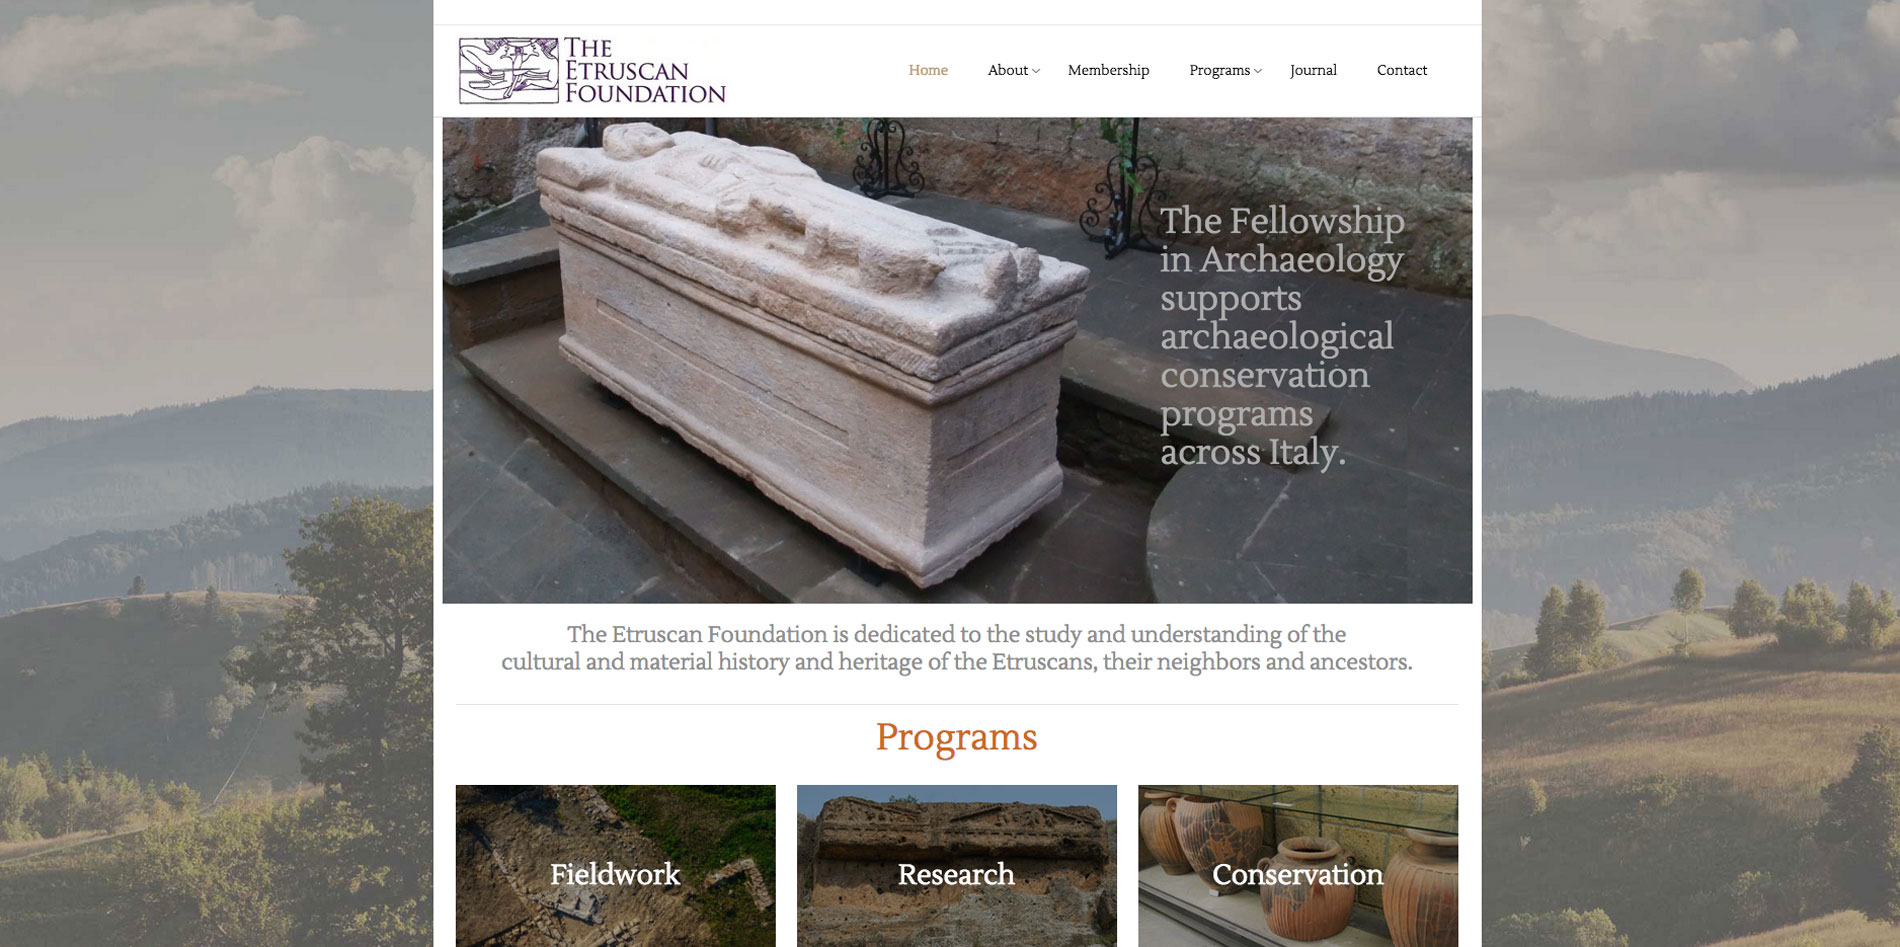 Website design home page 1 for Etruscan Foundation